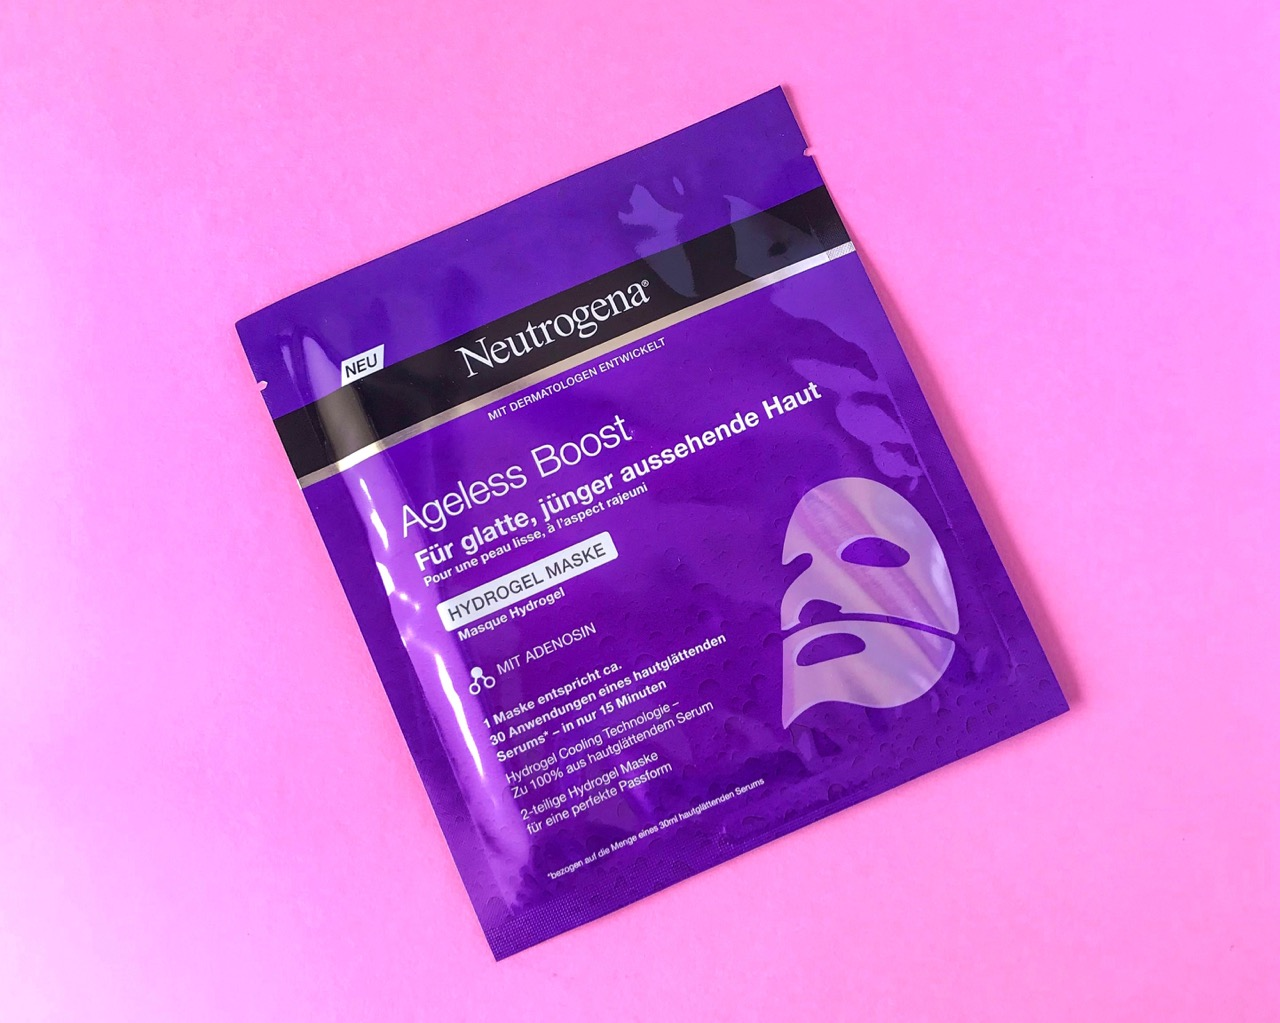 neutrogena hydrogel masken ageless boost